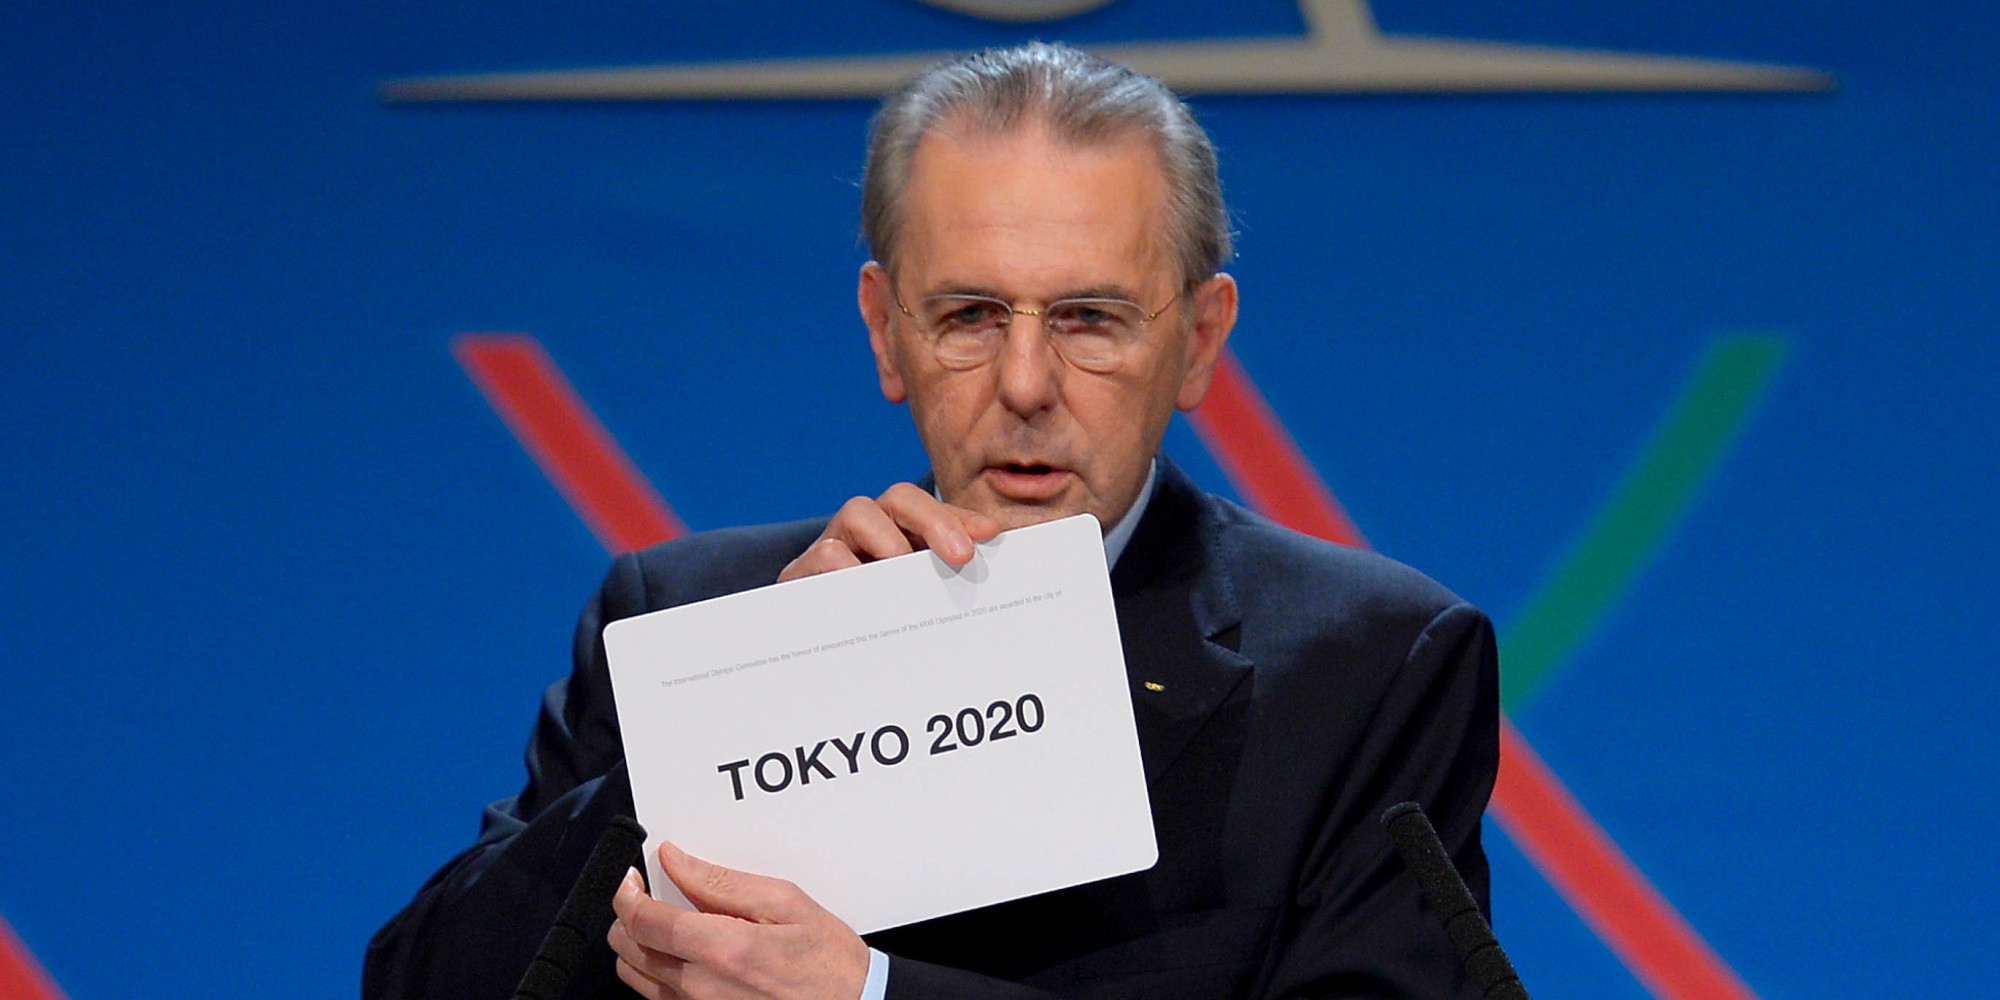 International Olympic Committee (IOC) President Jacques Rogge shows the name of the city of Tokyo elected to host the 2020 Summer Olympics in Buenos Aires, Argentina, Saturday, Sept. 7, 2013.  (AP Photo/Fabrice Coffrini, Pool)